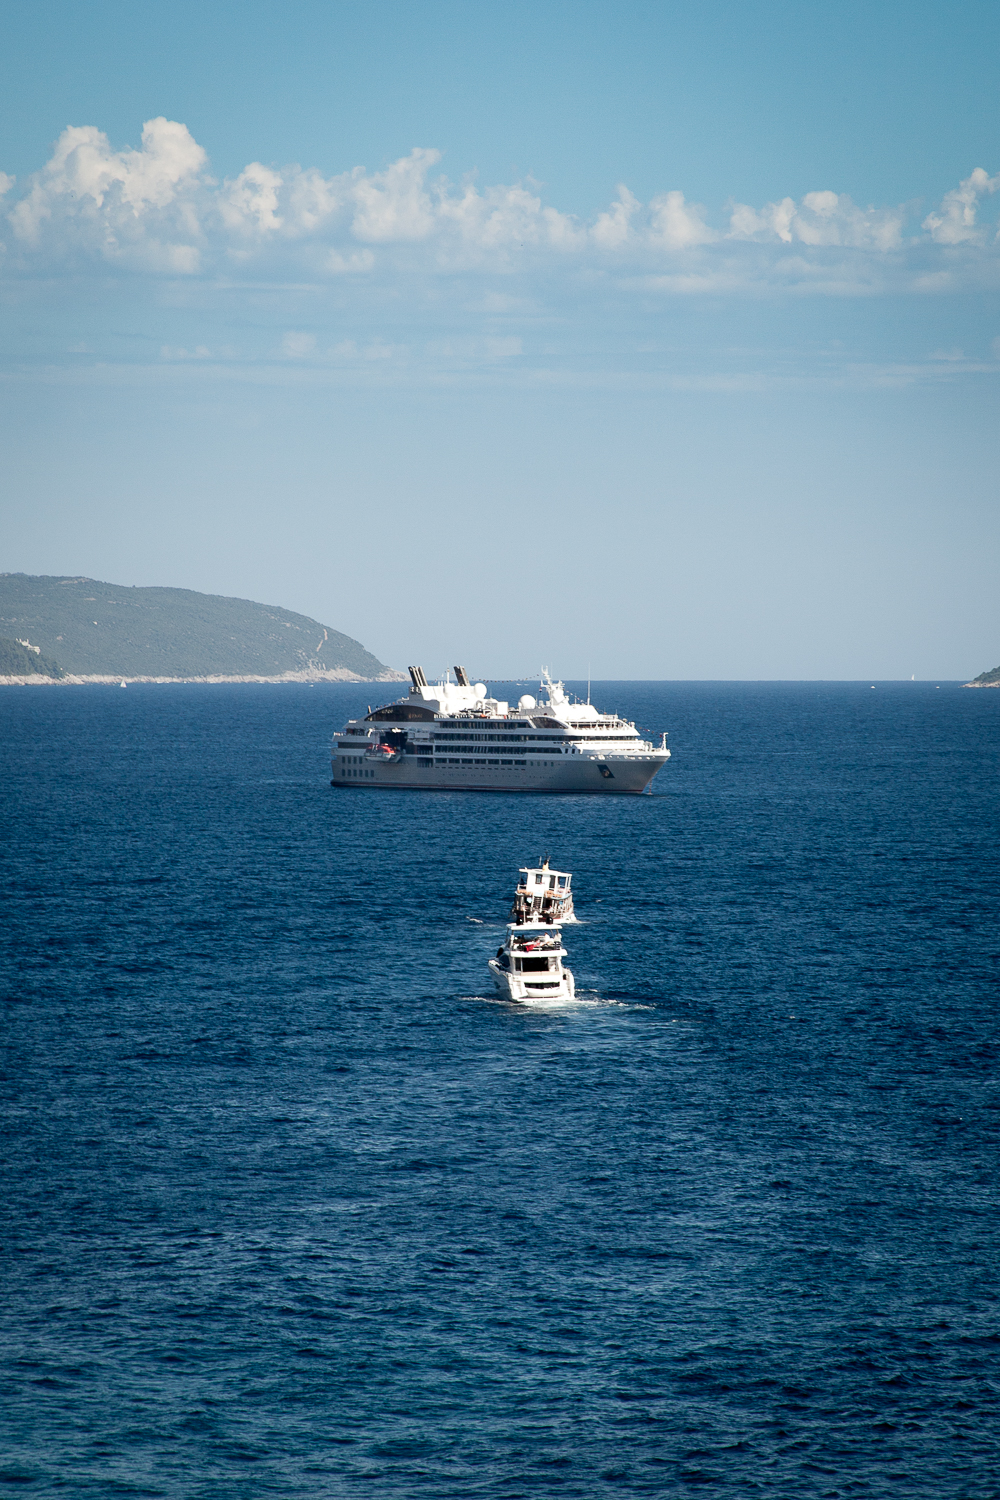 Le Lryial at anchor near Dubrovnik